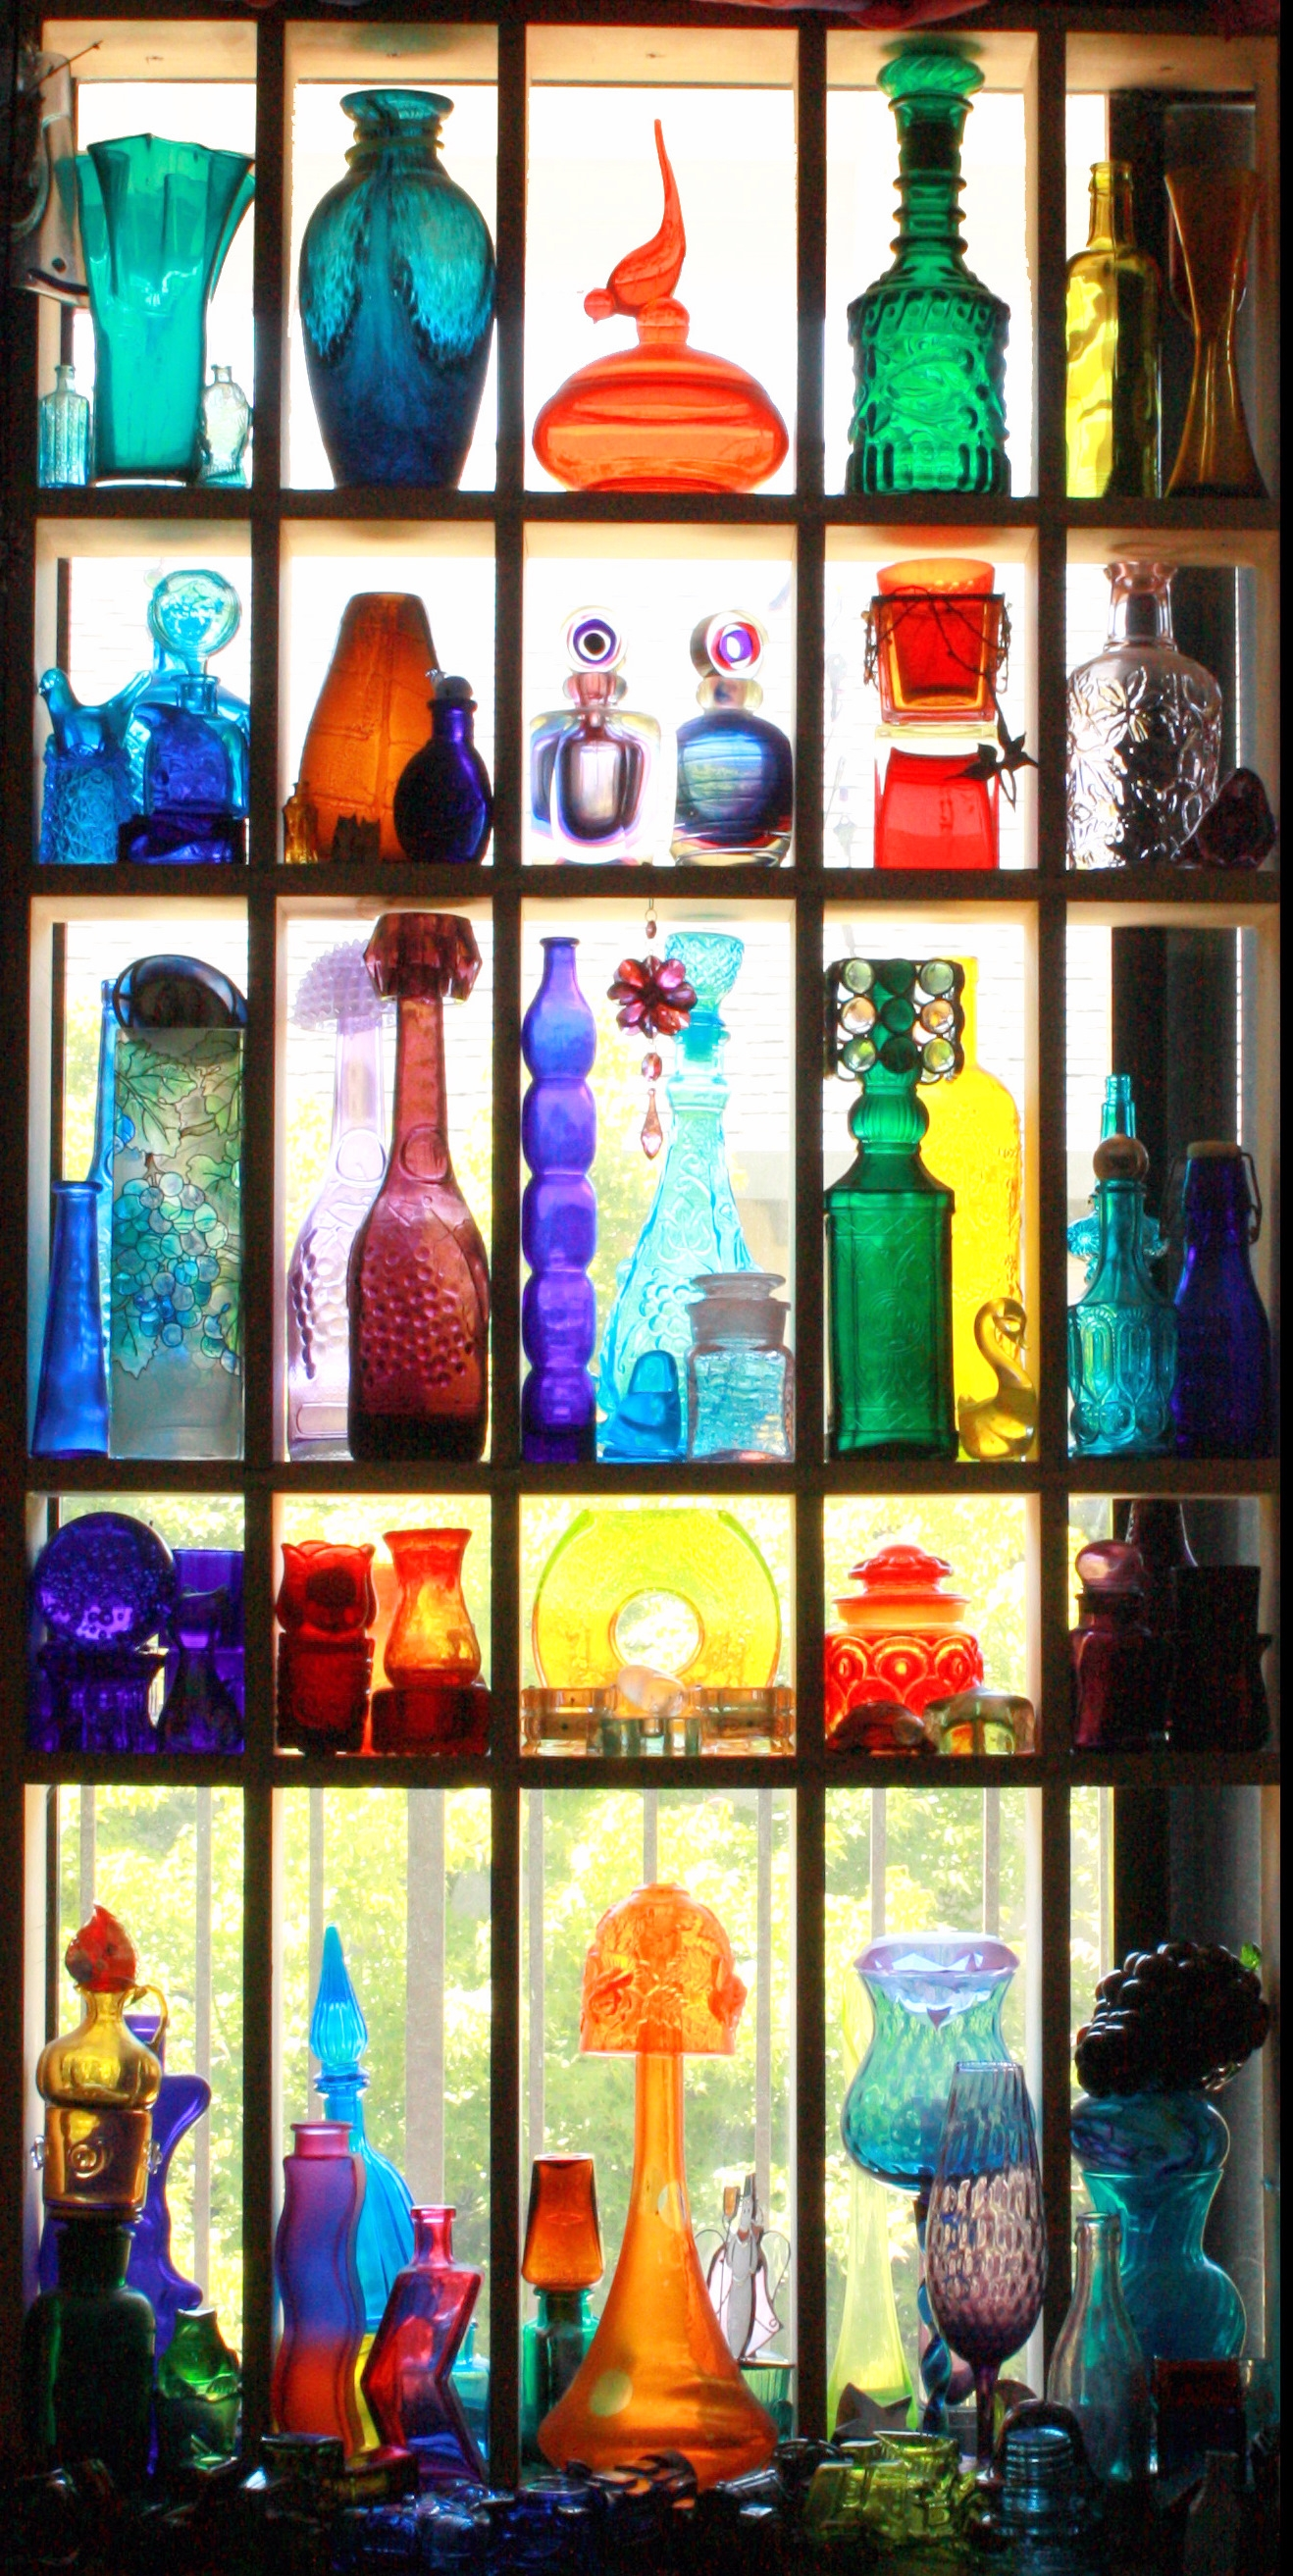 5 Astuces Dco Qui Ne Cotent Rien Coloured Glass Gypsy Rose In Coloured Glass Shelves (Image 3 of 15)